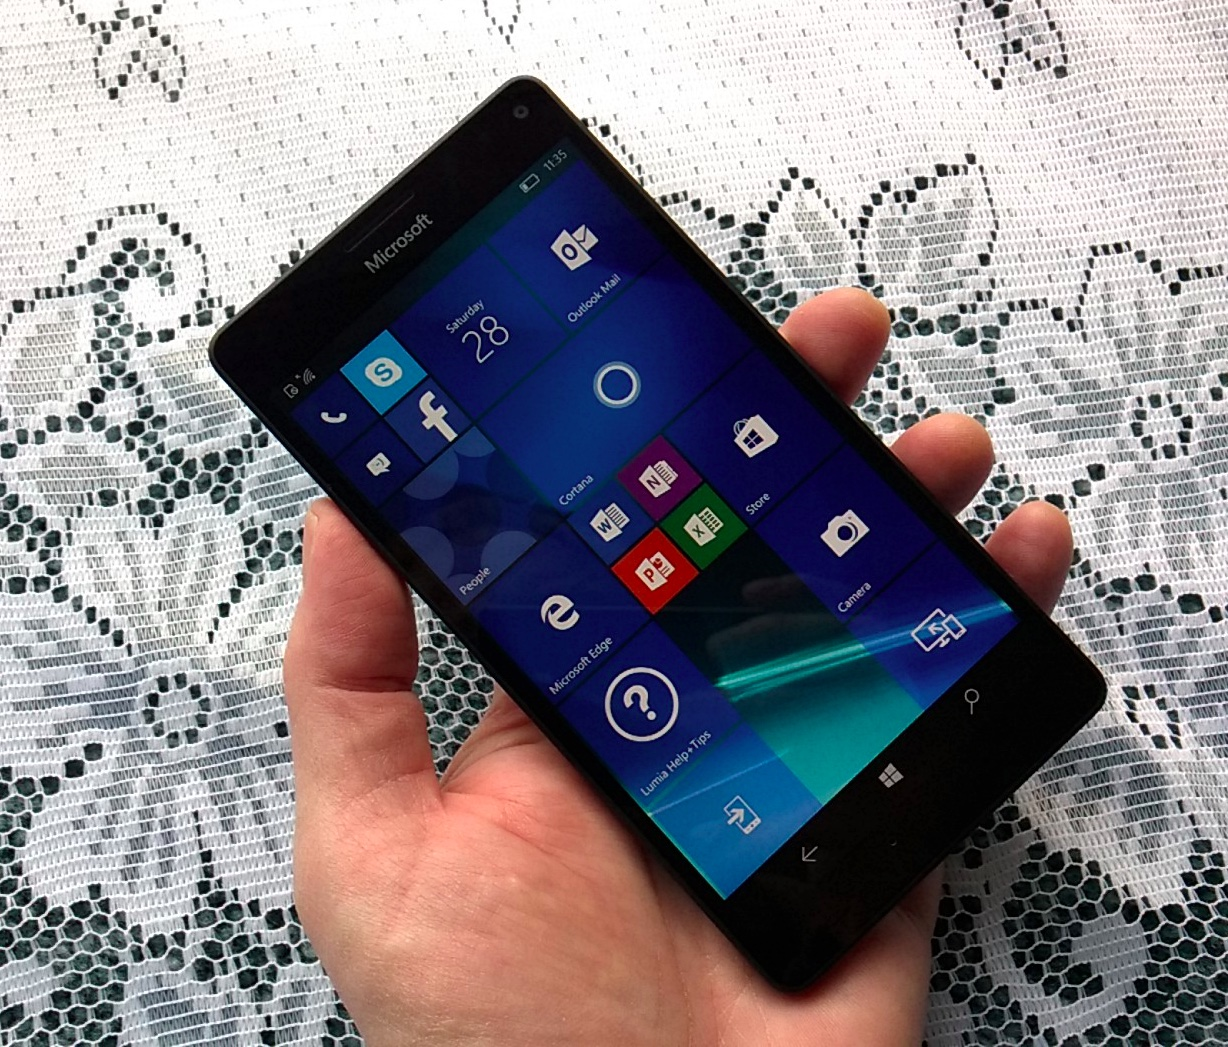 Lumia 950 XL in the hand